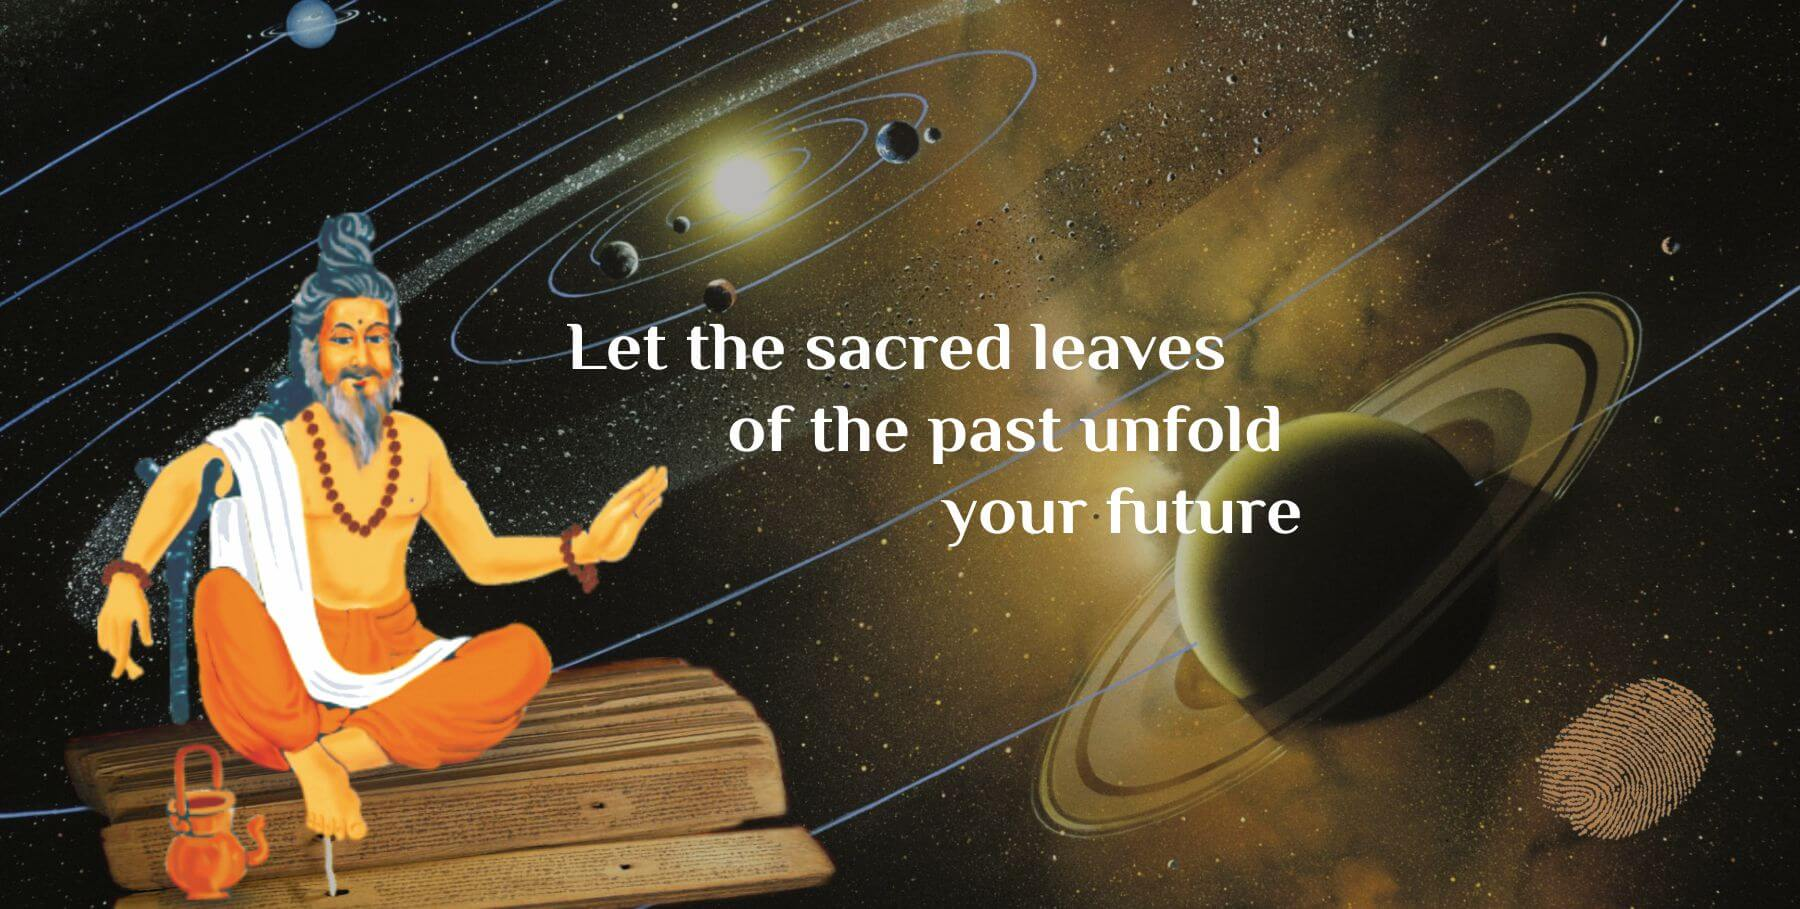 Let the sacred leaves of the past unfold your future